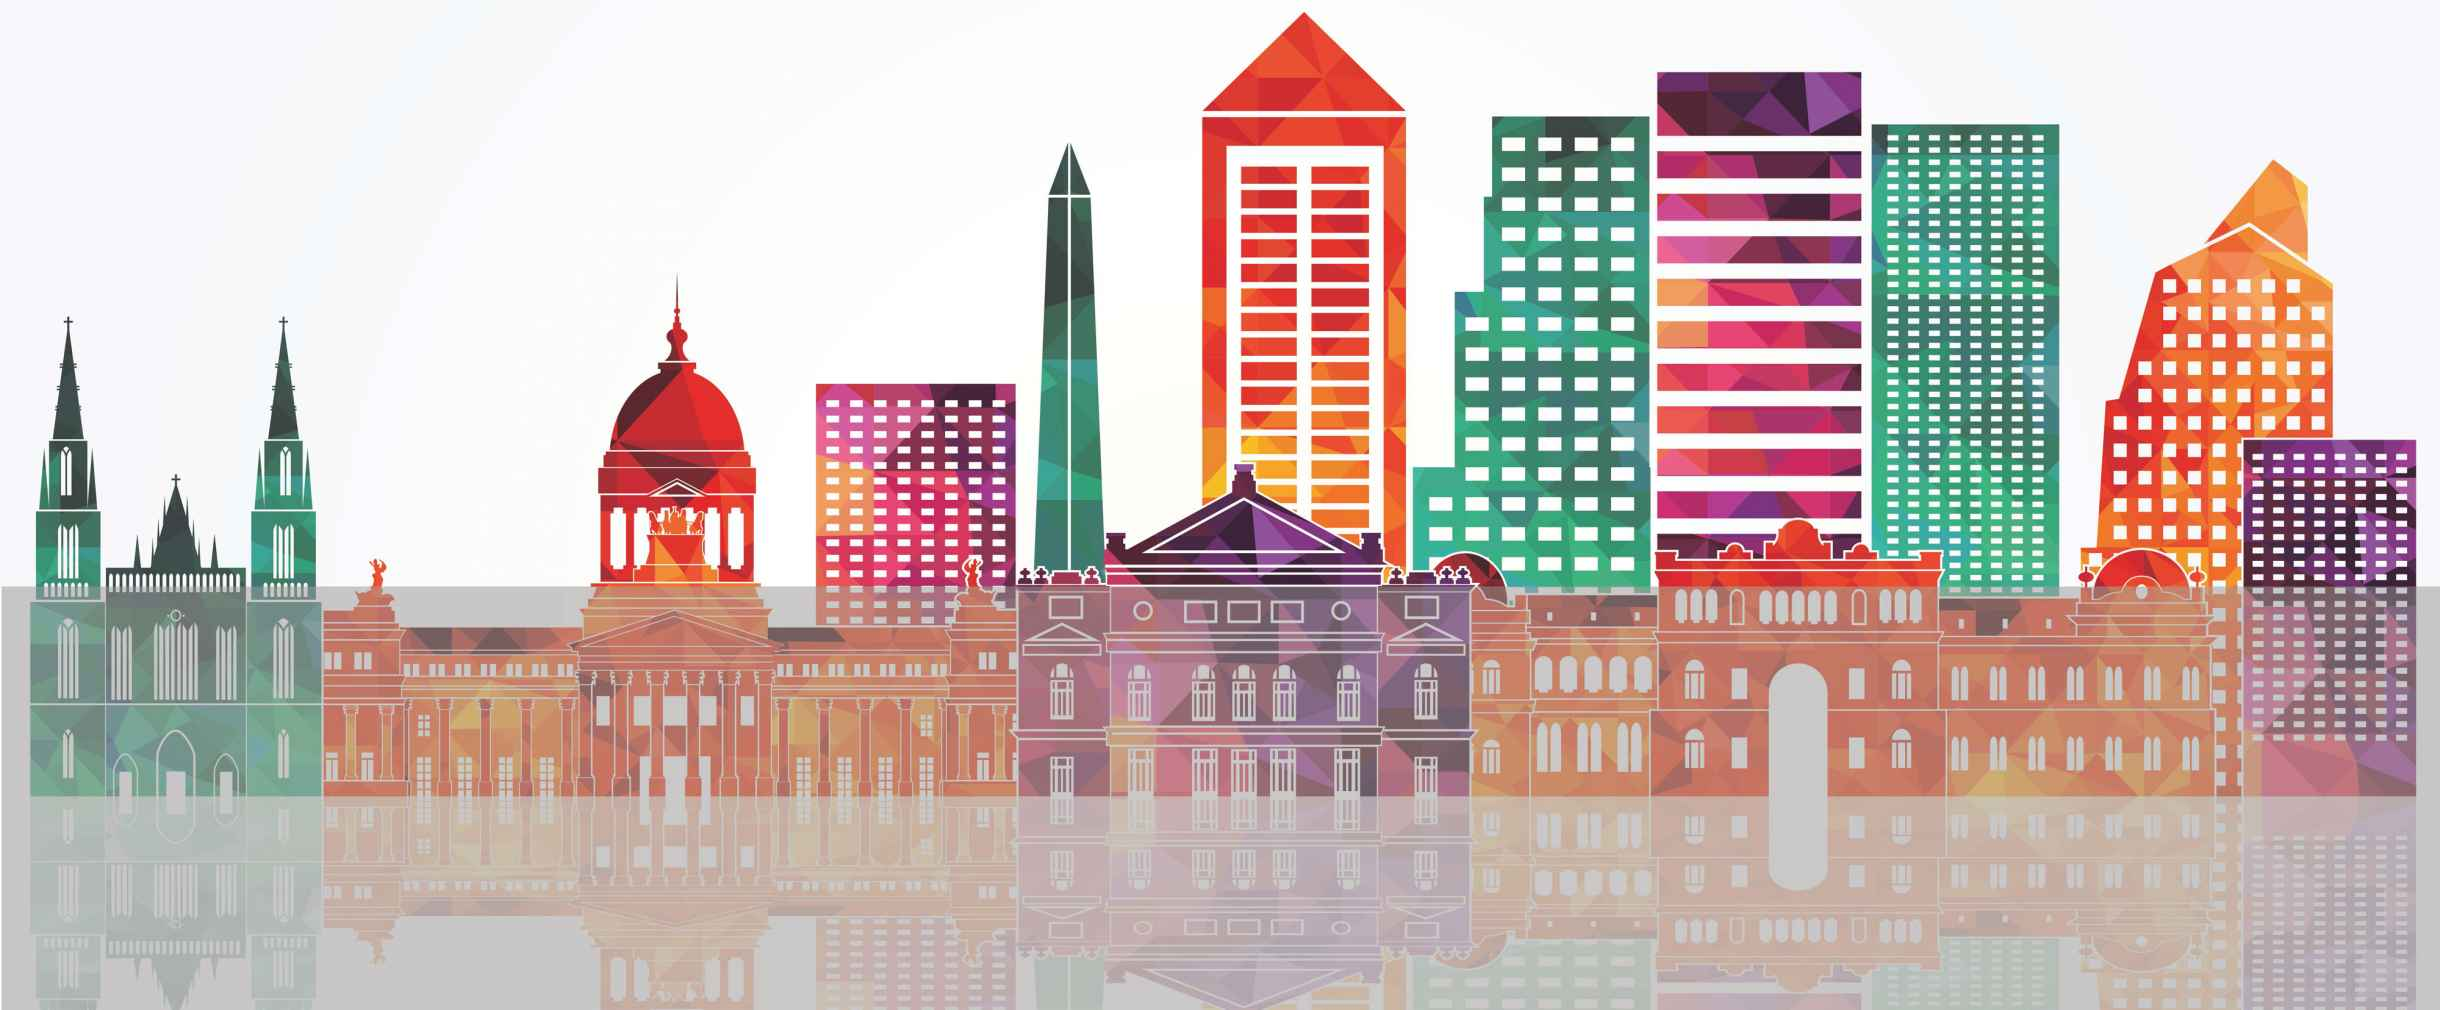 Colorful graphic of city buildings